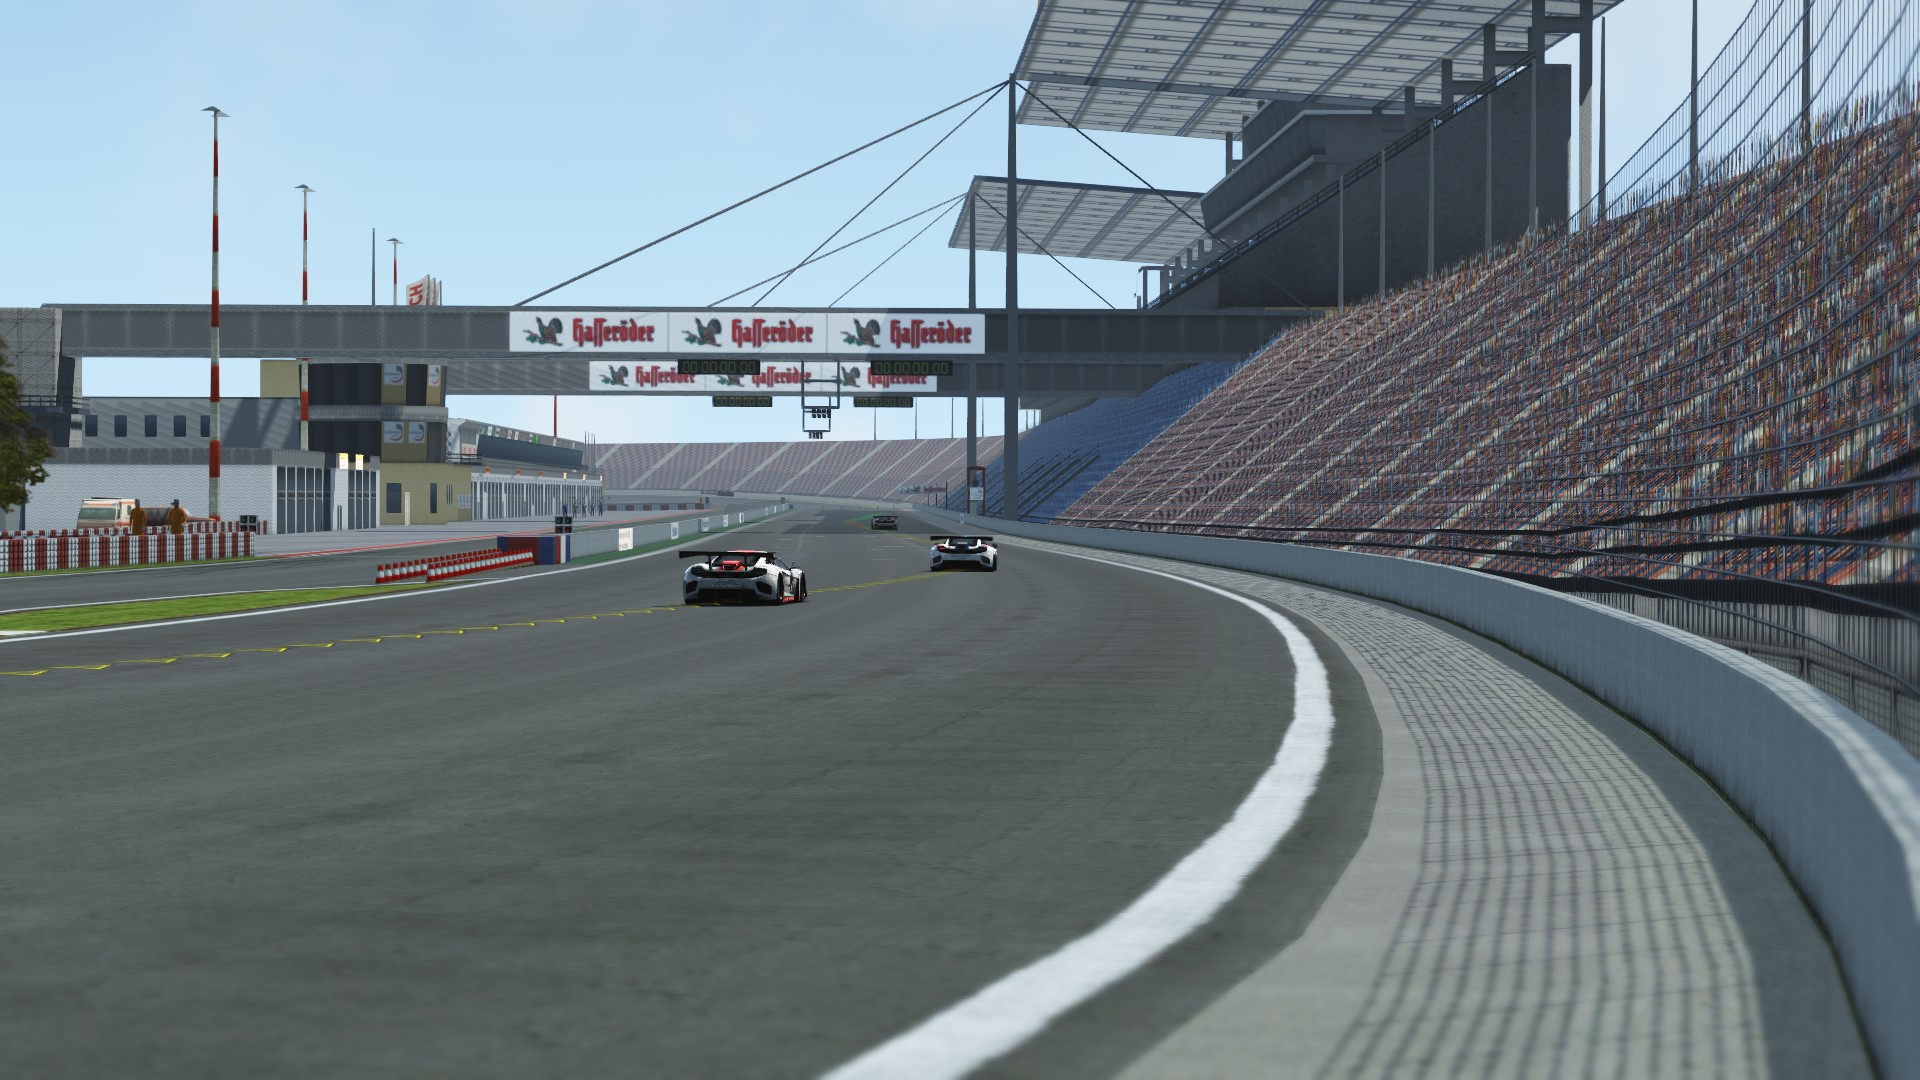 Screenshot_mclaren_mp412c_gt3_eurospeedwaygp_23-8-115-20-39-59.jpg